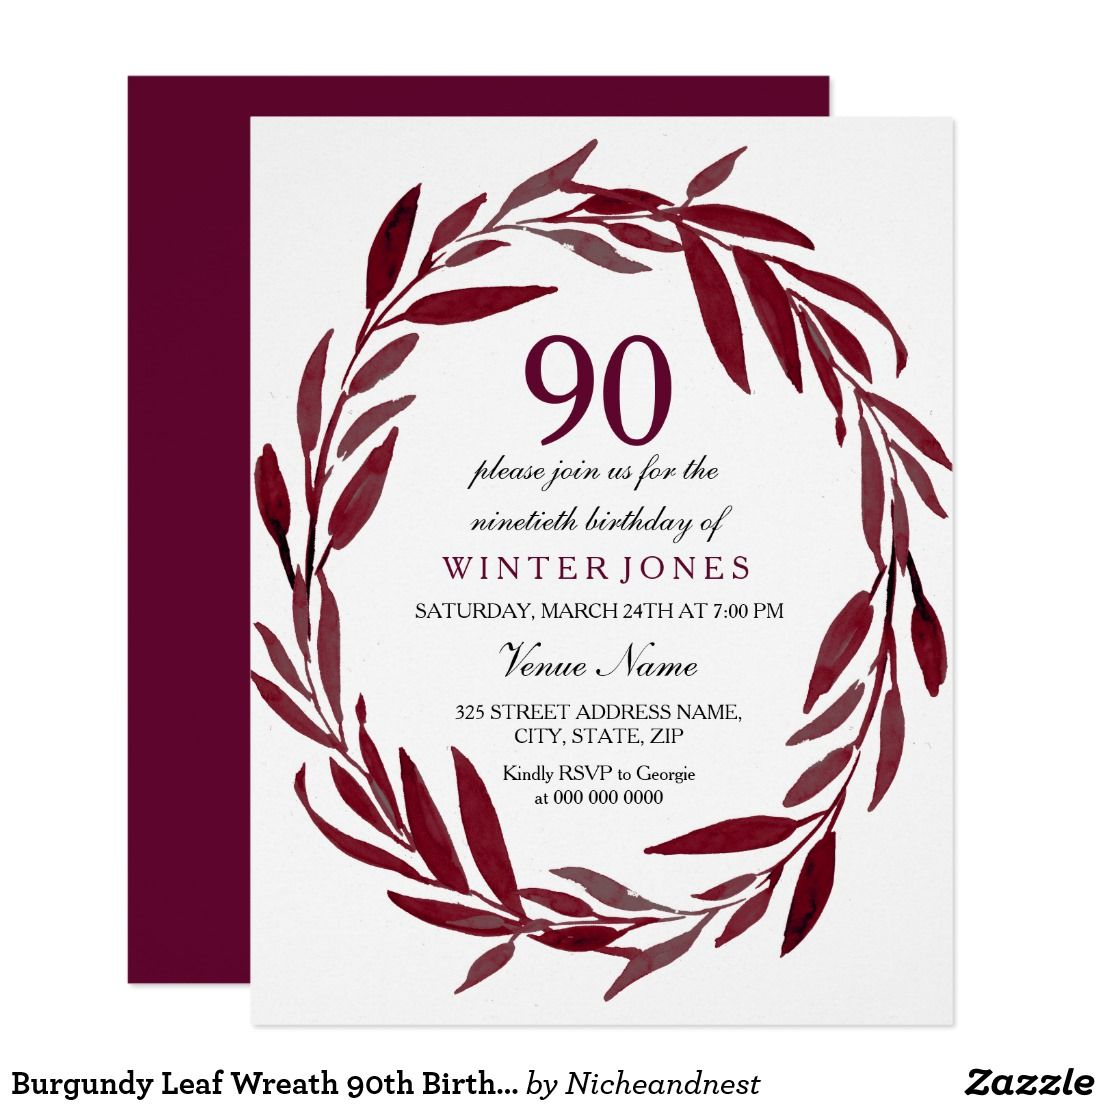 100th birthday invitations ideas kordurorddiner burgundy leaf wreath 90th birthday party invite 100th birthday invitations ideas filmwisefo